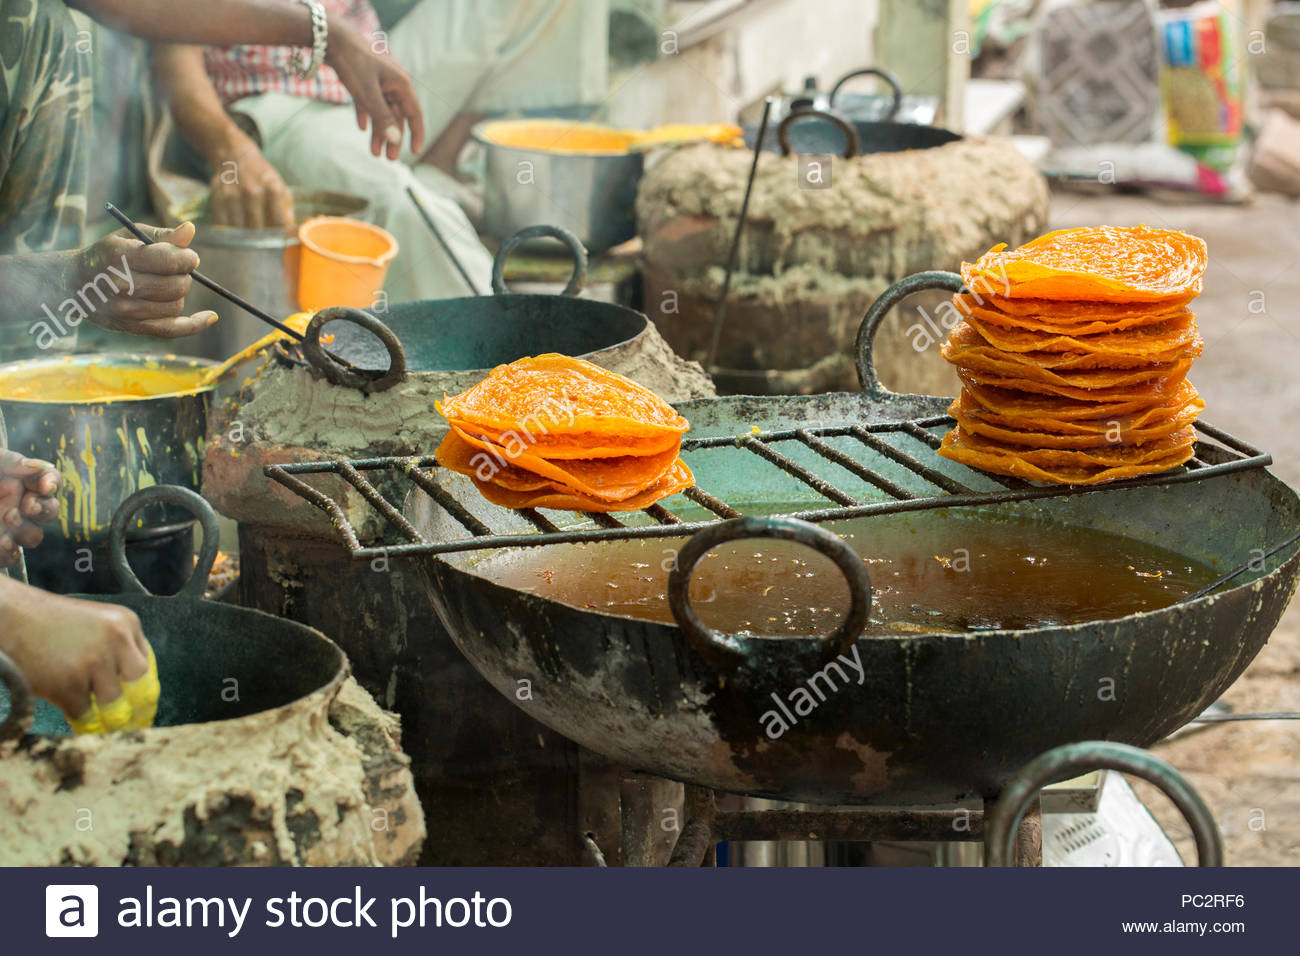 indian traditional sweet food Ghewar - Stock Image